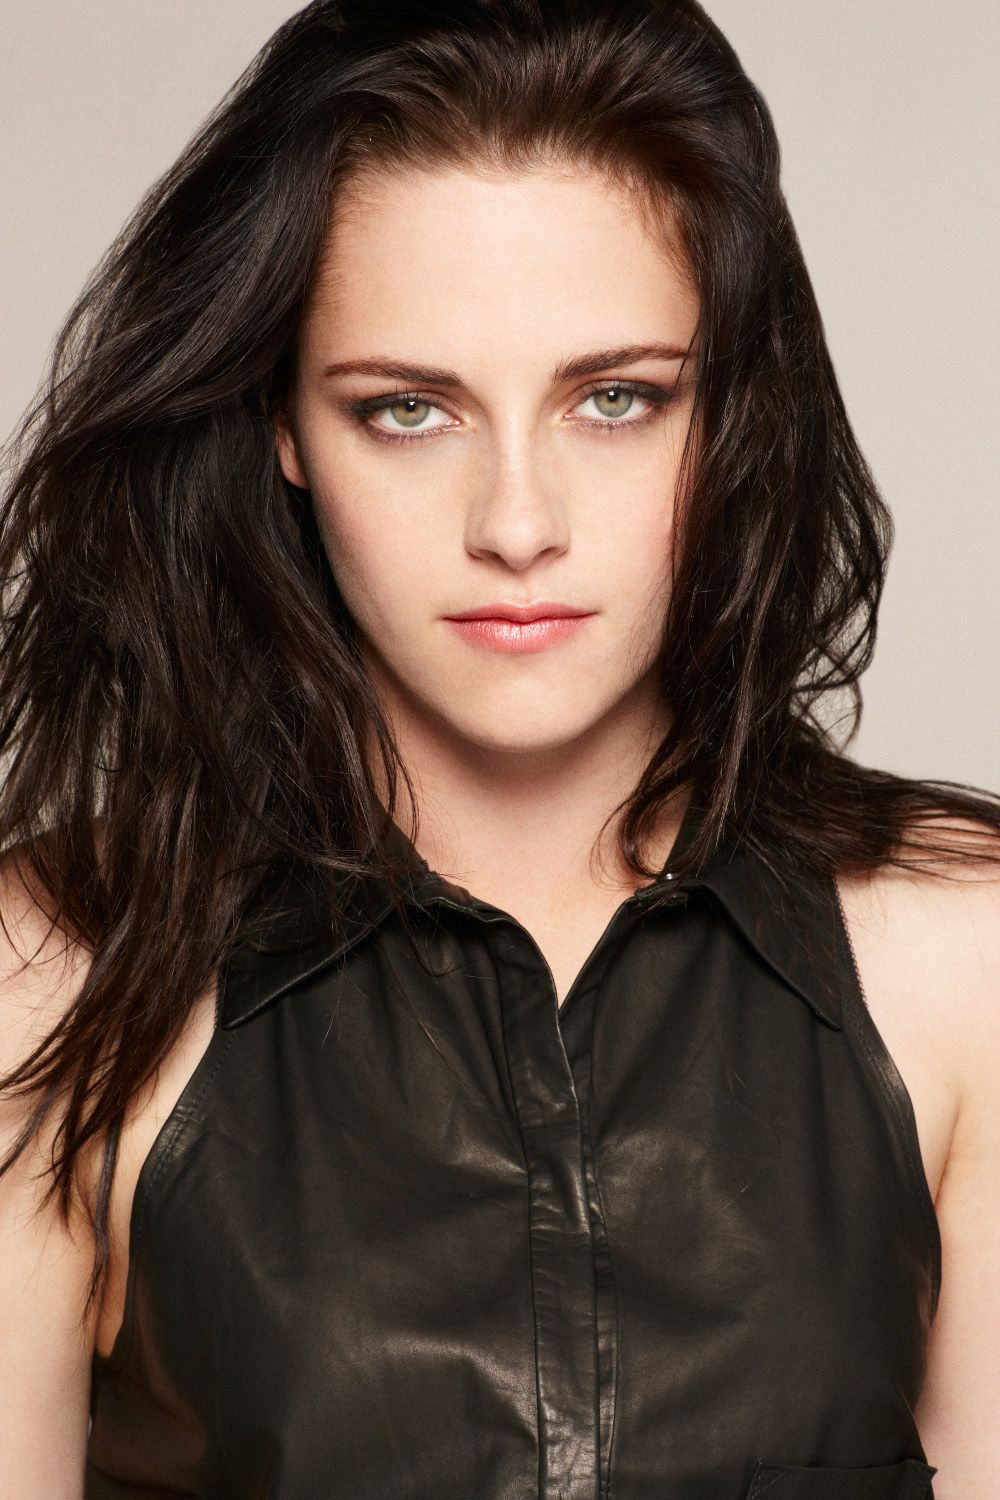 Kristen Stewart 199 Success Facts - Everything you need to know about Kristen Stewart